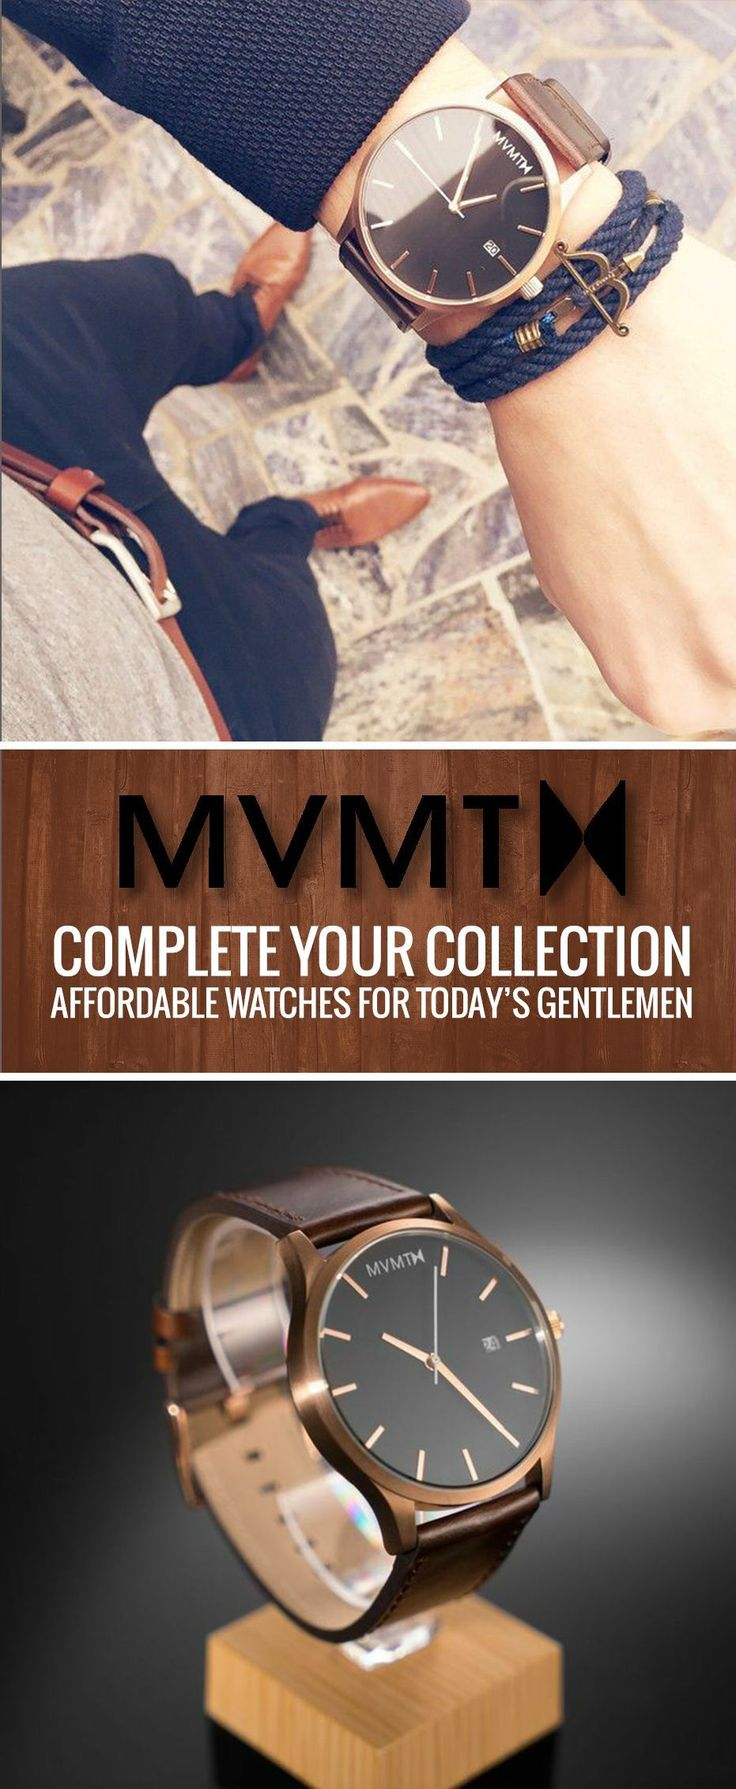 Looking for the perfect gift for the man in your life? With many men's styles to choose from all around $100 with free shipping worldwide, we're sure you'll find a watch that will fit his style!